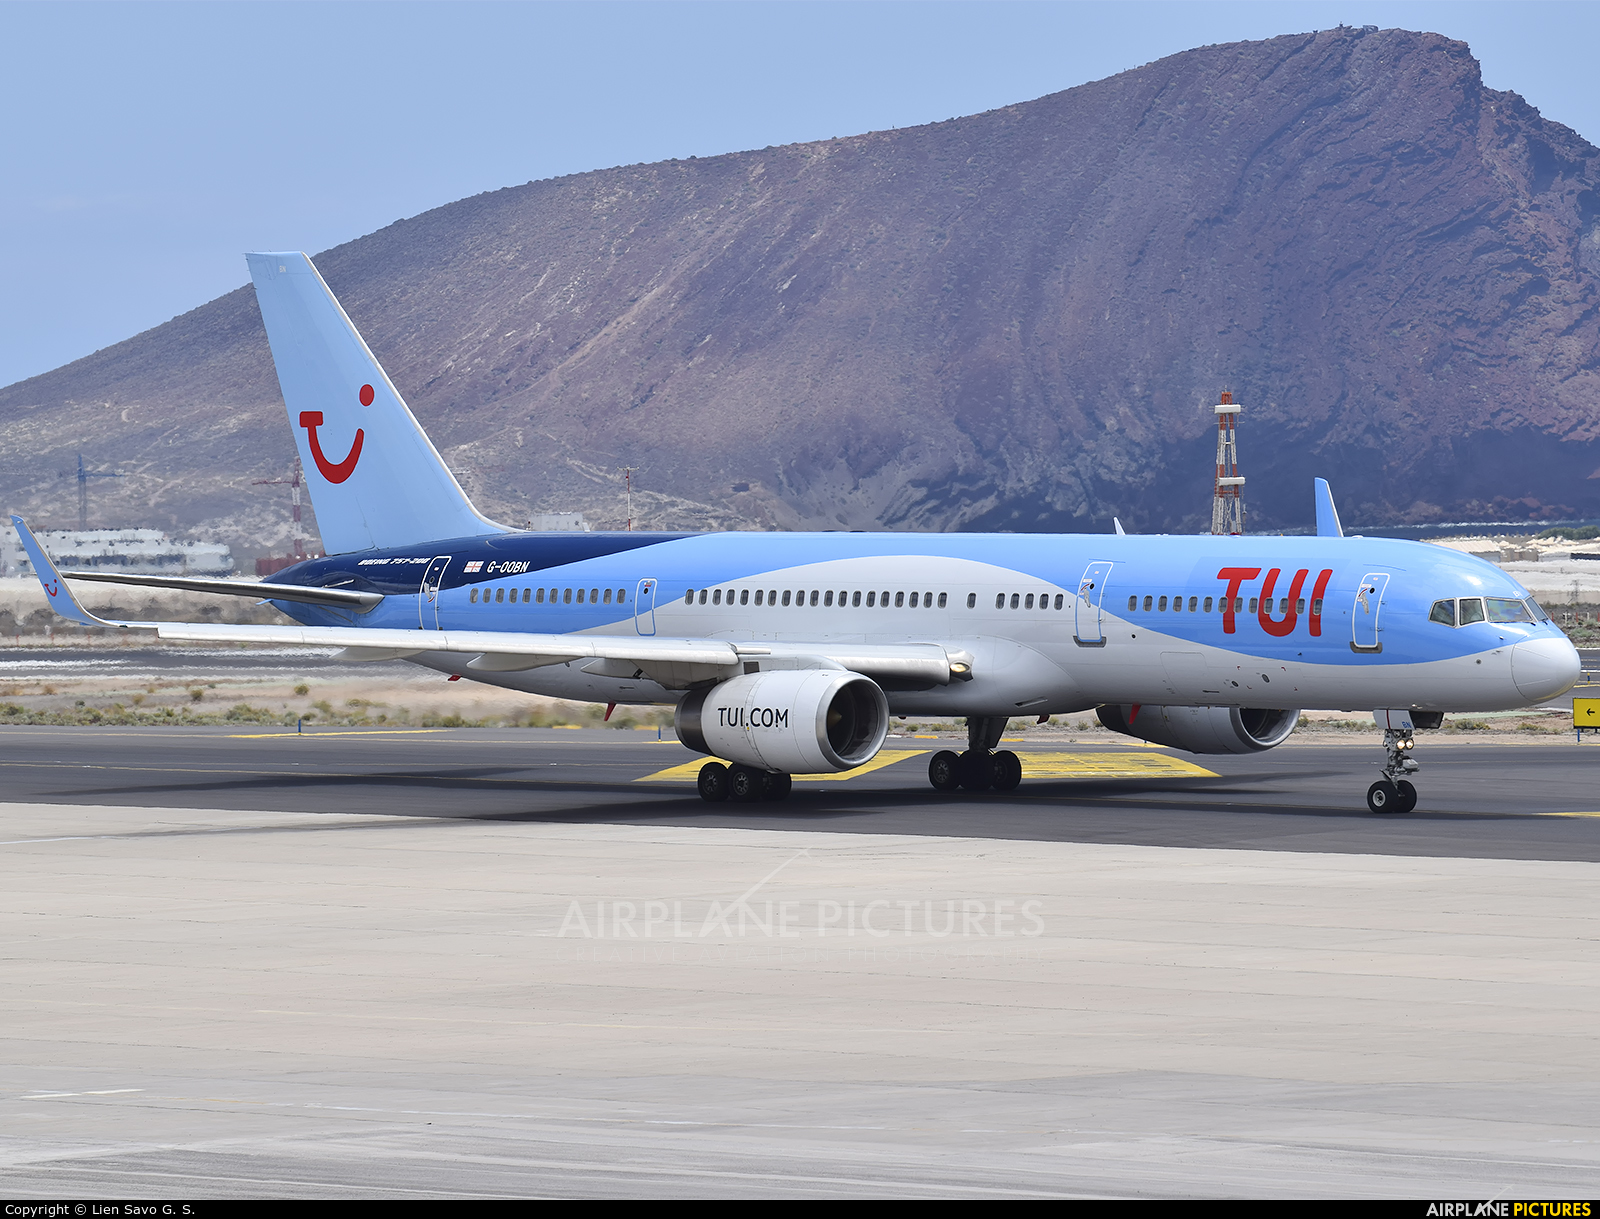 TUI Airways G-OOBN aircraft at Tenerife Sur - Reina Sofia